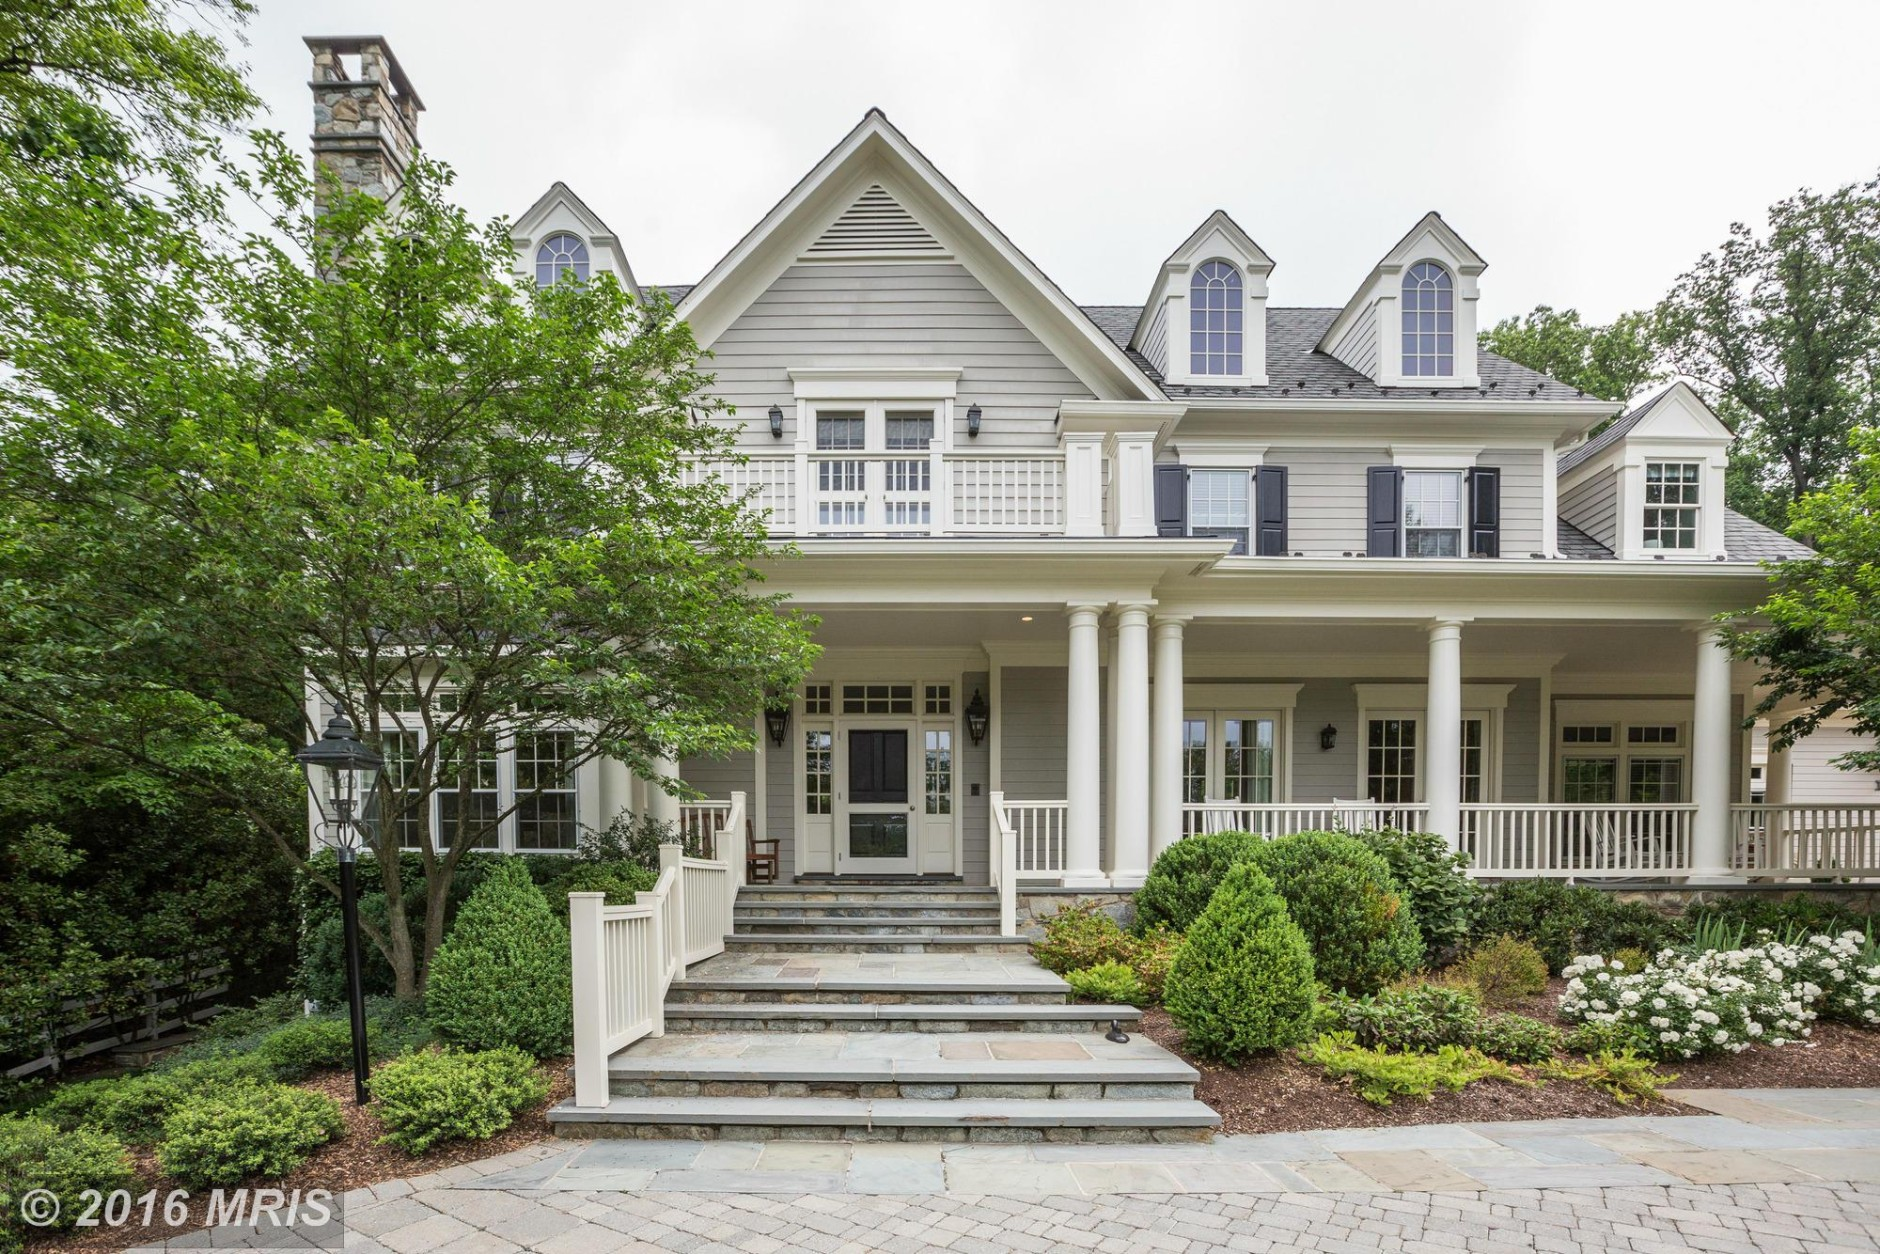 10. $3,150,000 7125 Arrowood Rd., Bethesda, Maryland This Colonial has five bedrooms, five full bathrooms and three half-bathrooms. It was built in 2003. (MRIS)